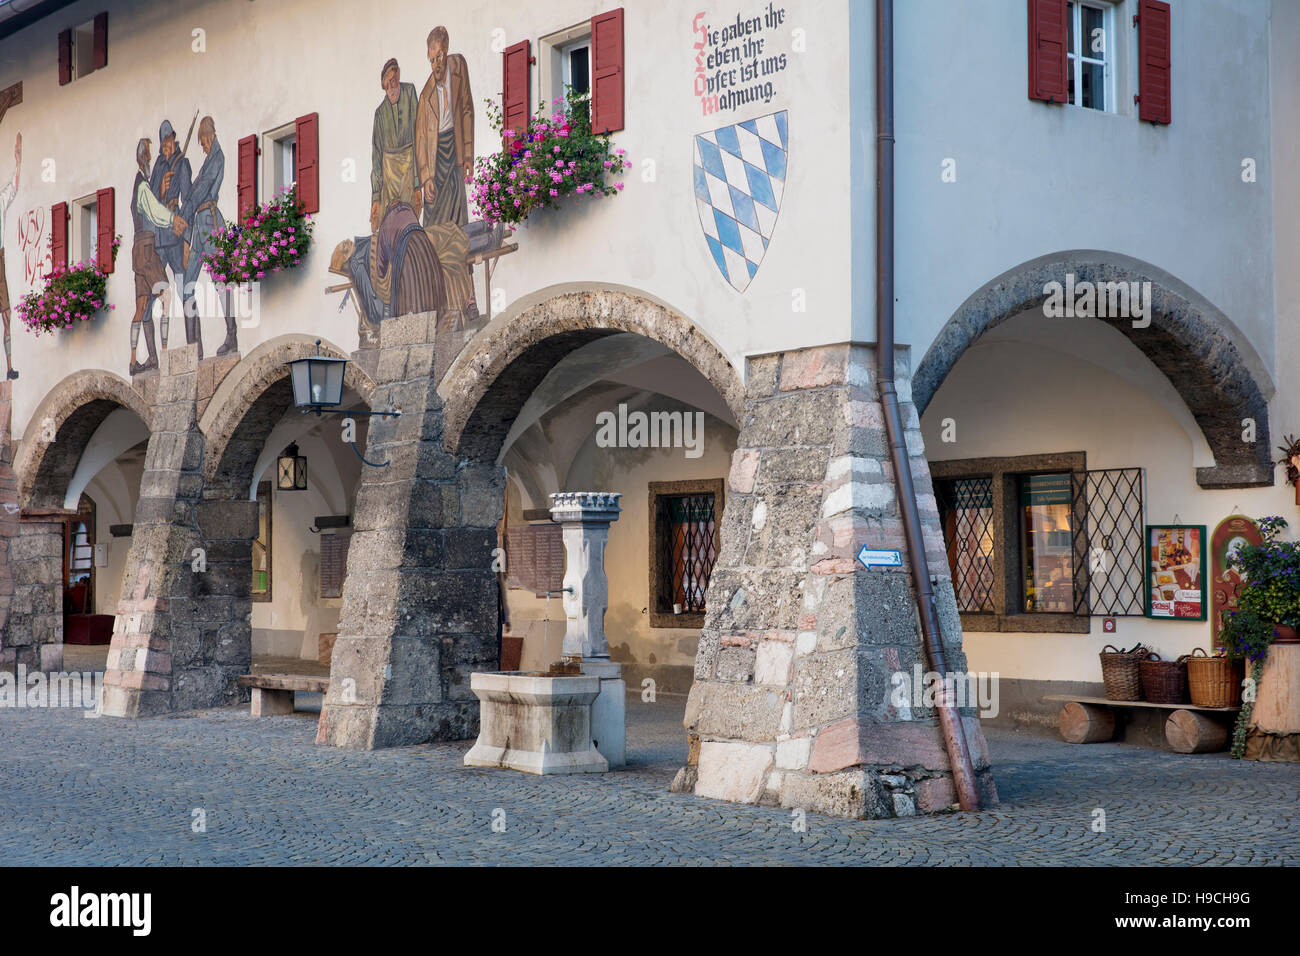 Murals - Lueftlmalerei, painted on the walls above the walkway surrounding the Schlossplatz in Berchtesgaden, Bavaria, - Stock Image